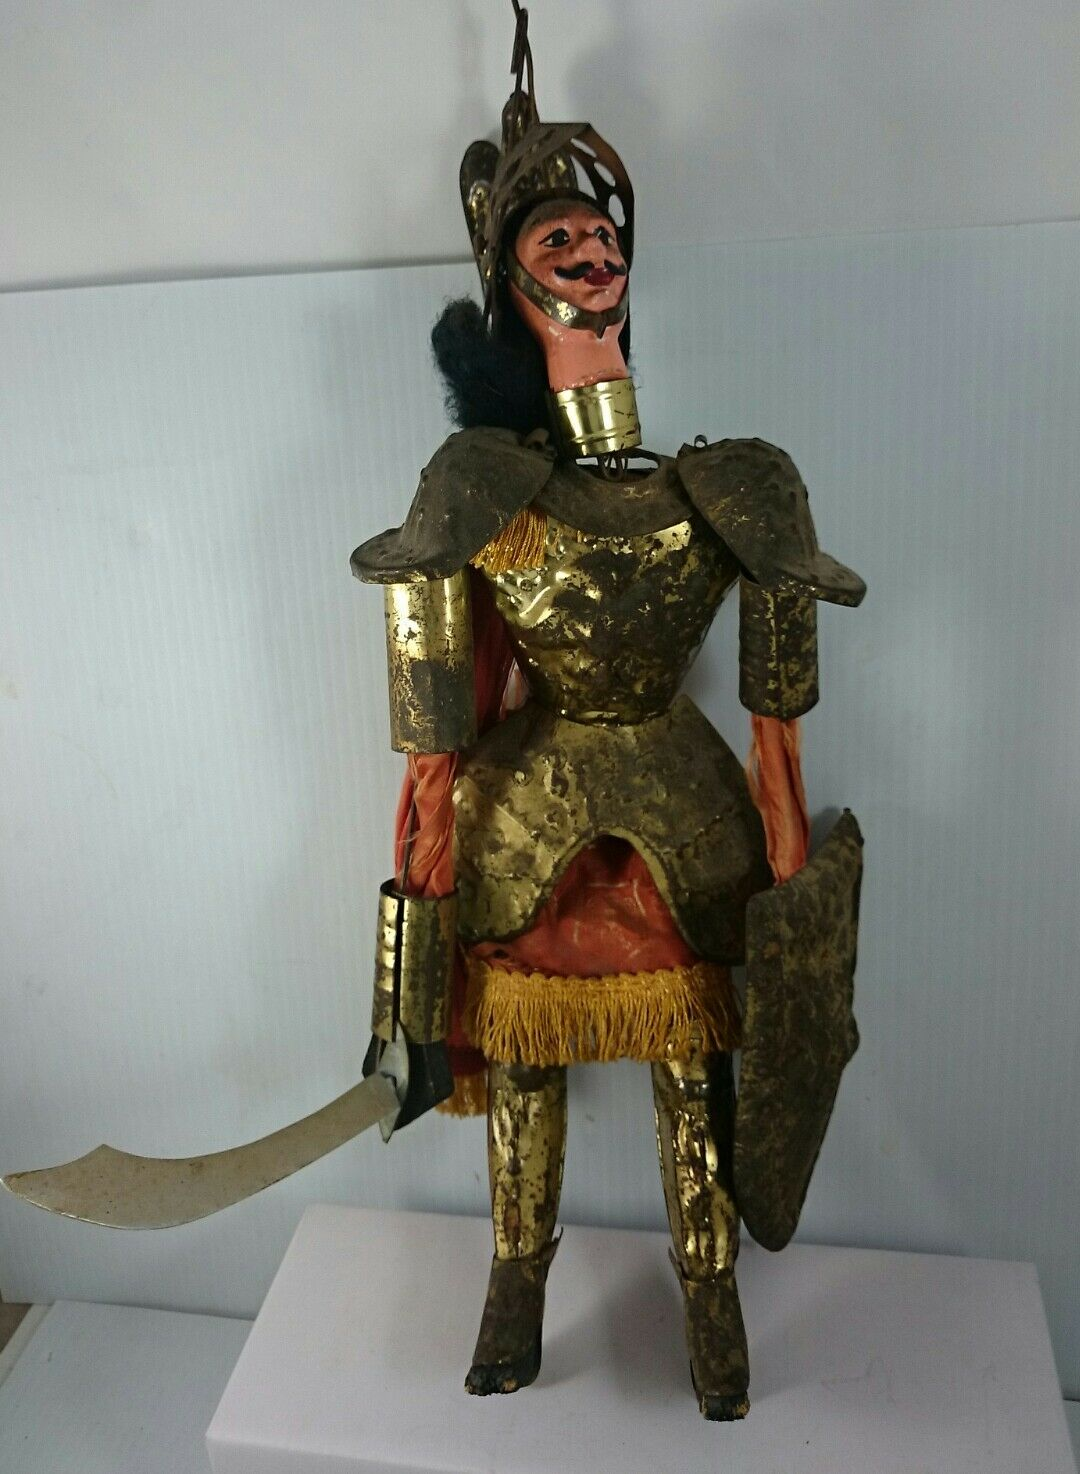 SPANISH TIN PUPPET Ceremonial Knight Caped Figure Vintage Toy Collectible Art